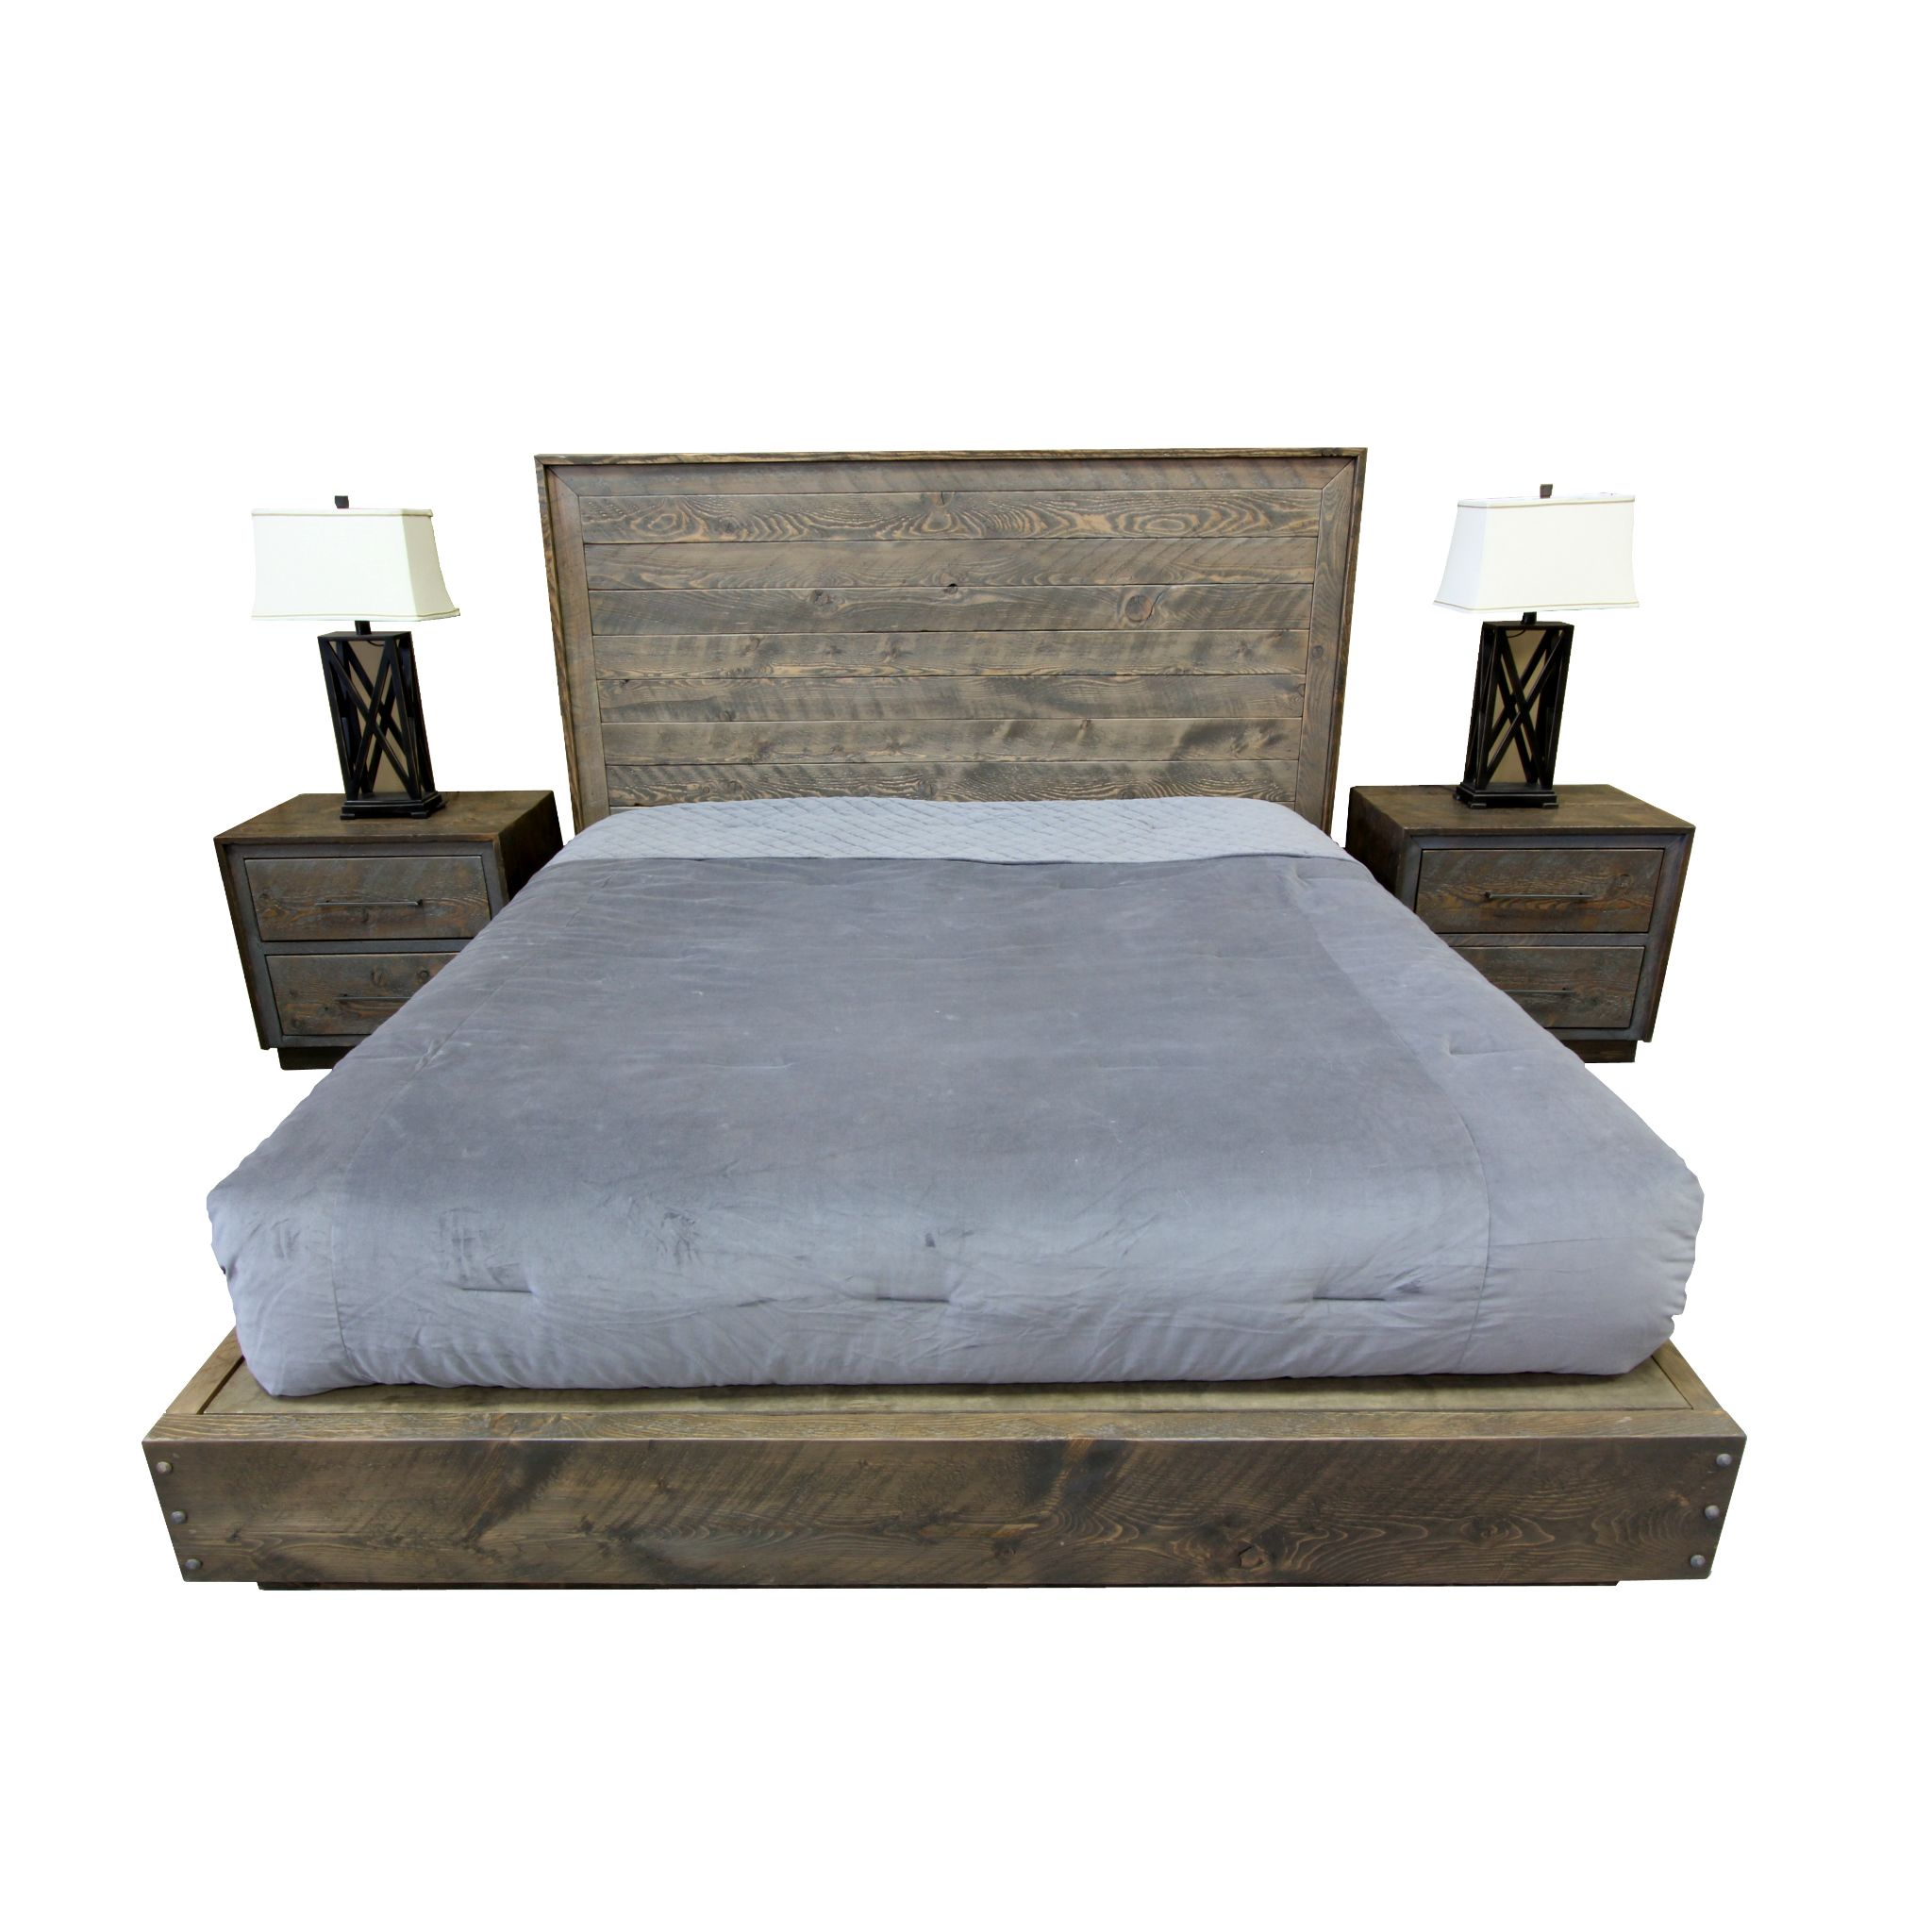 Modern Platform Bed And Nightstands Made From Circle Sawn Fir In A